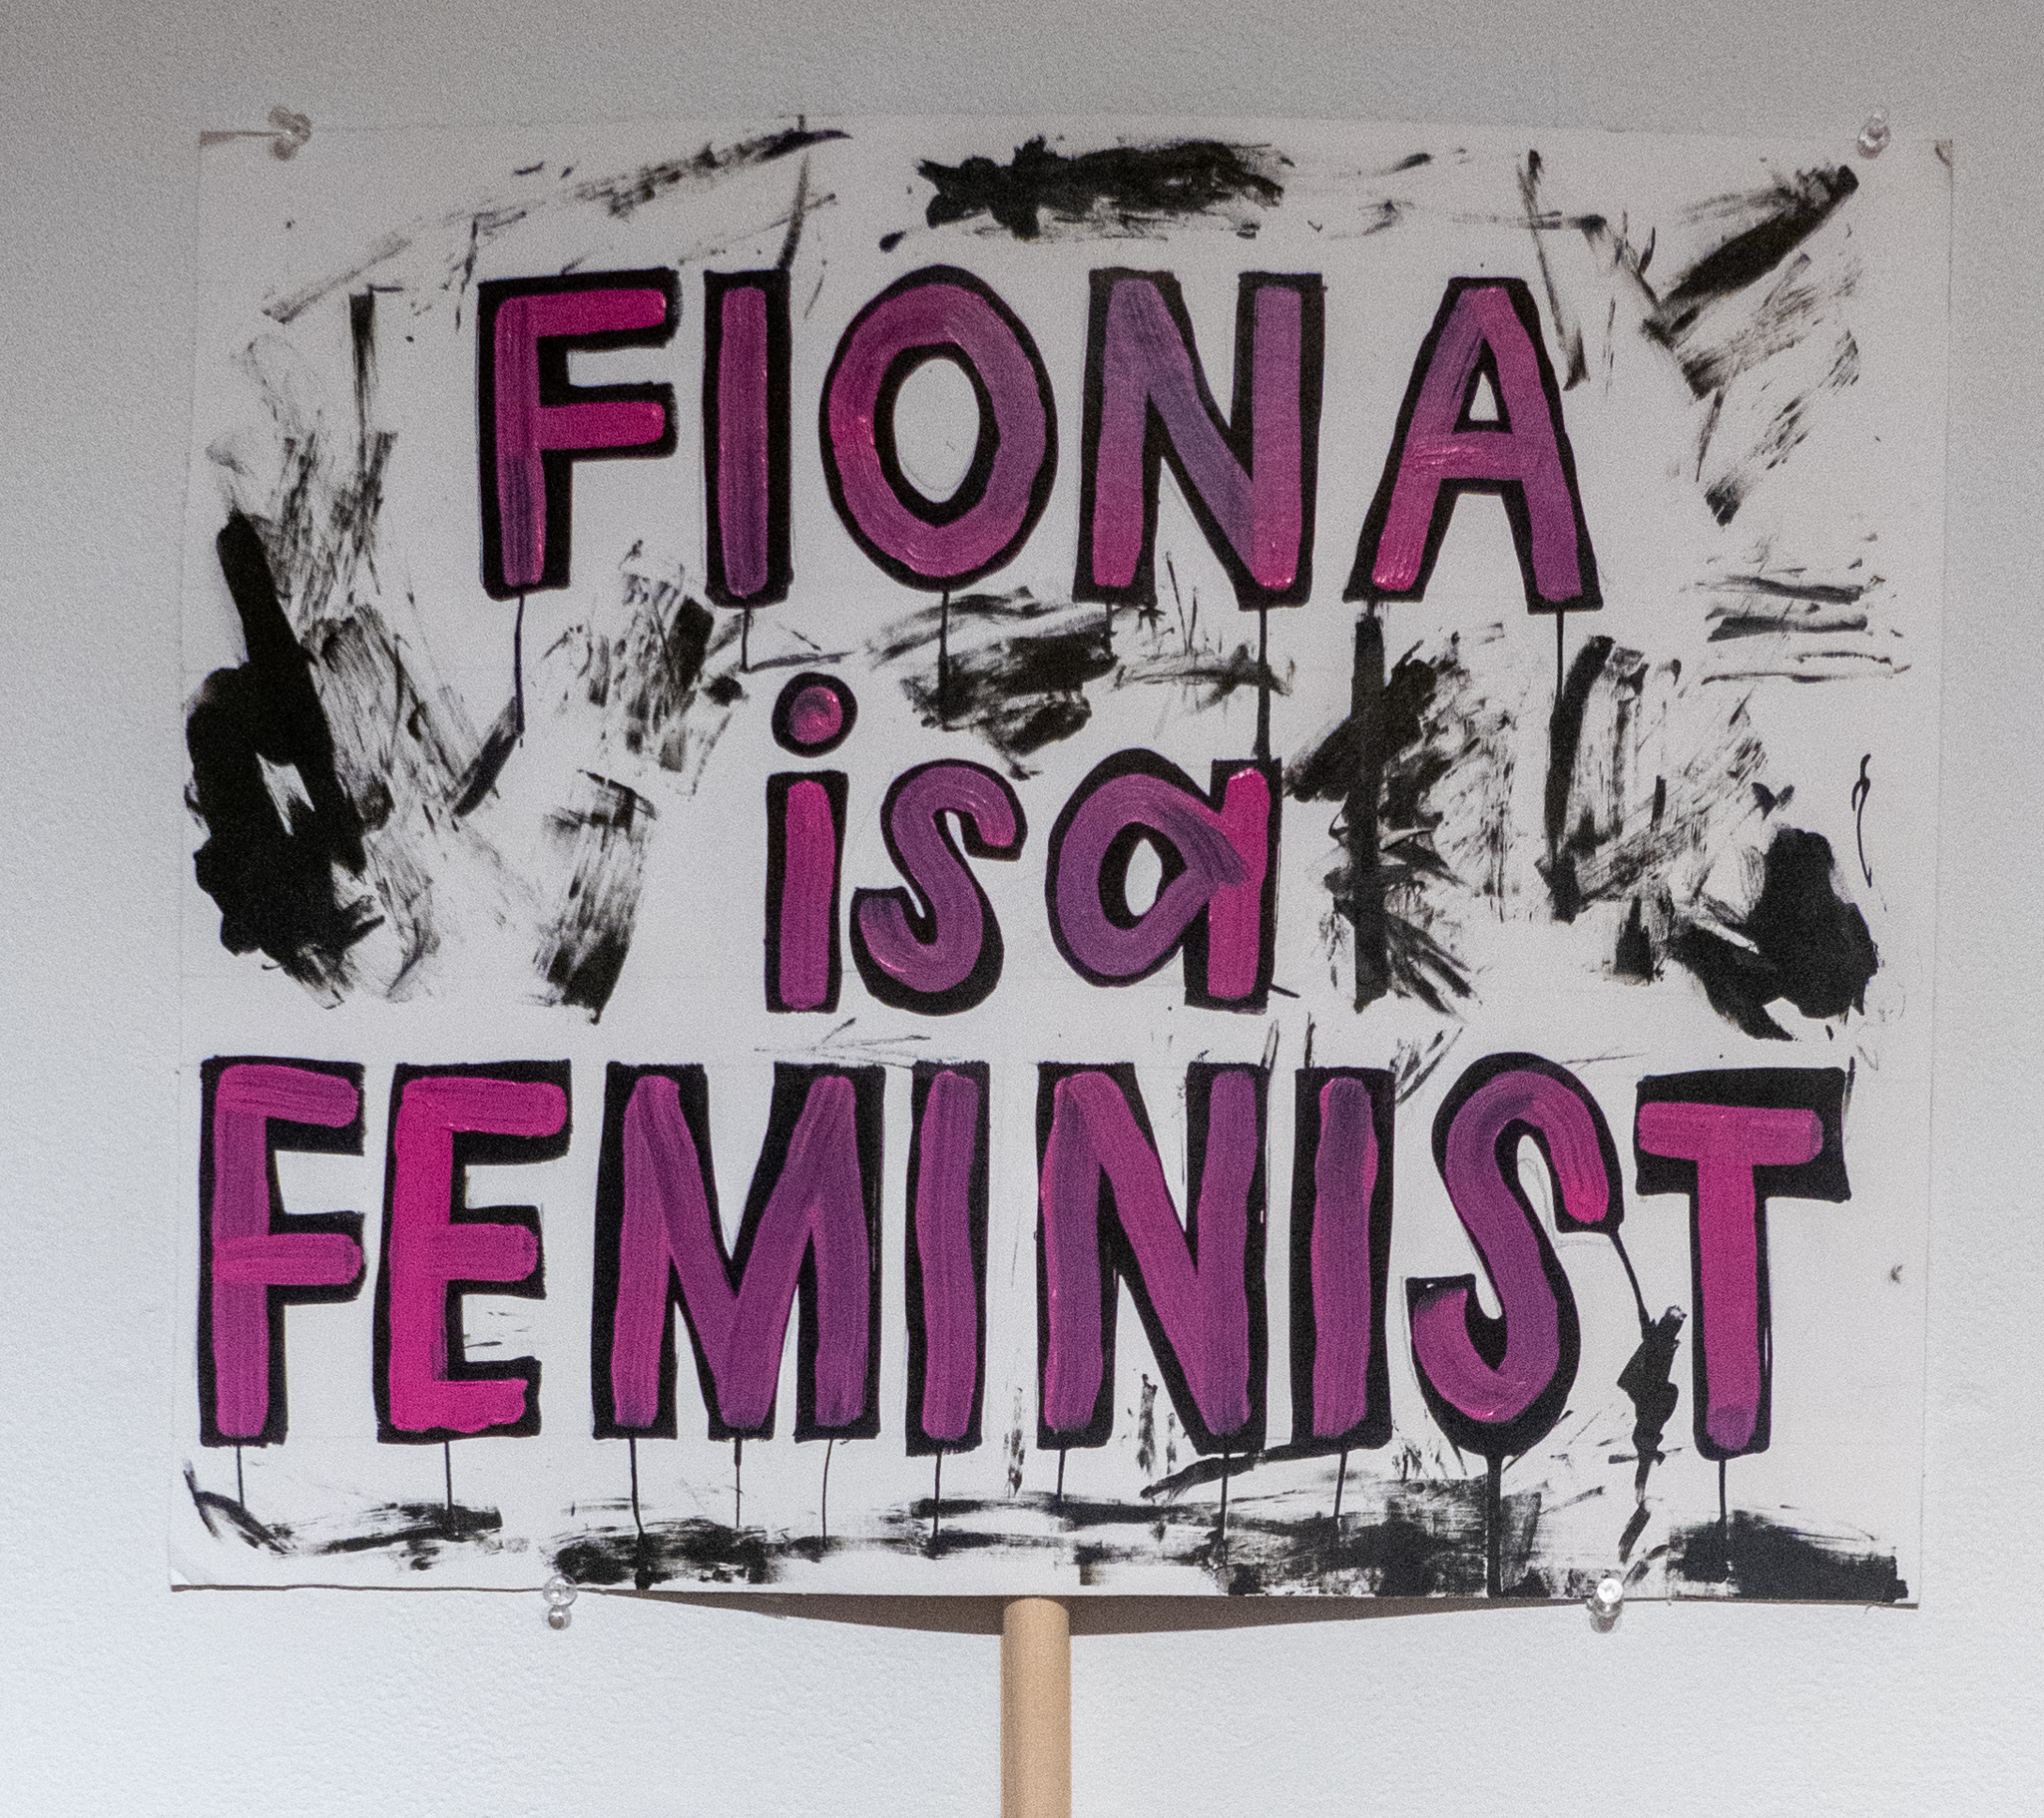 Fiona is a Feminist